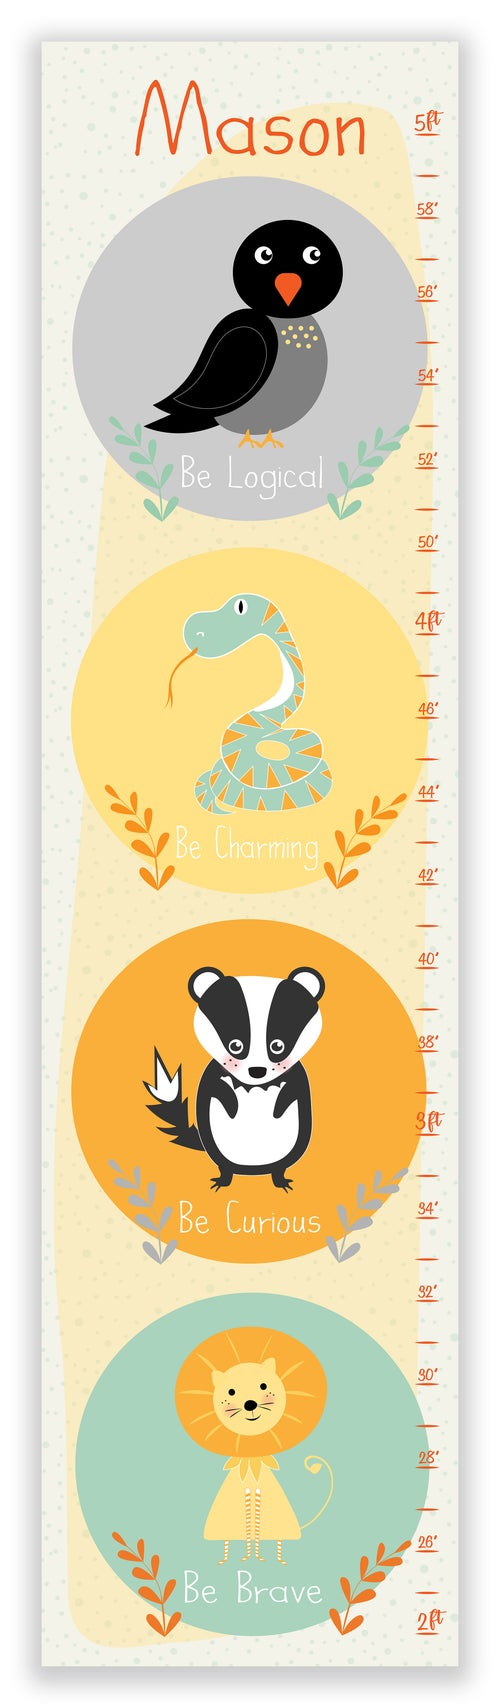 Image of Harry Potter Inspired Animals Personalized Canvas Growth Chart